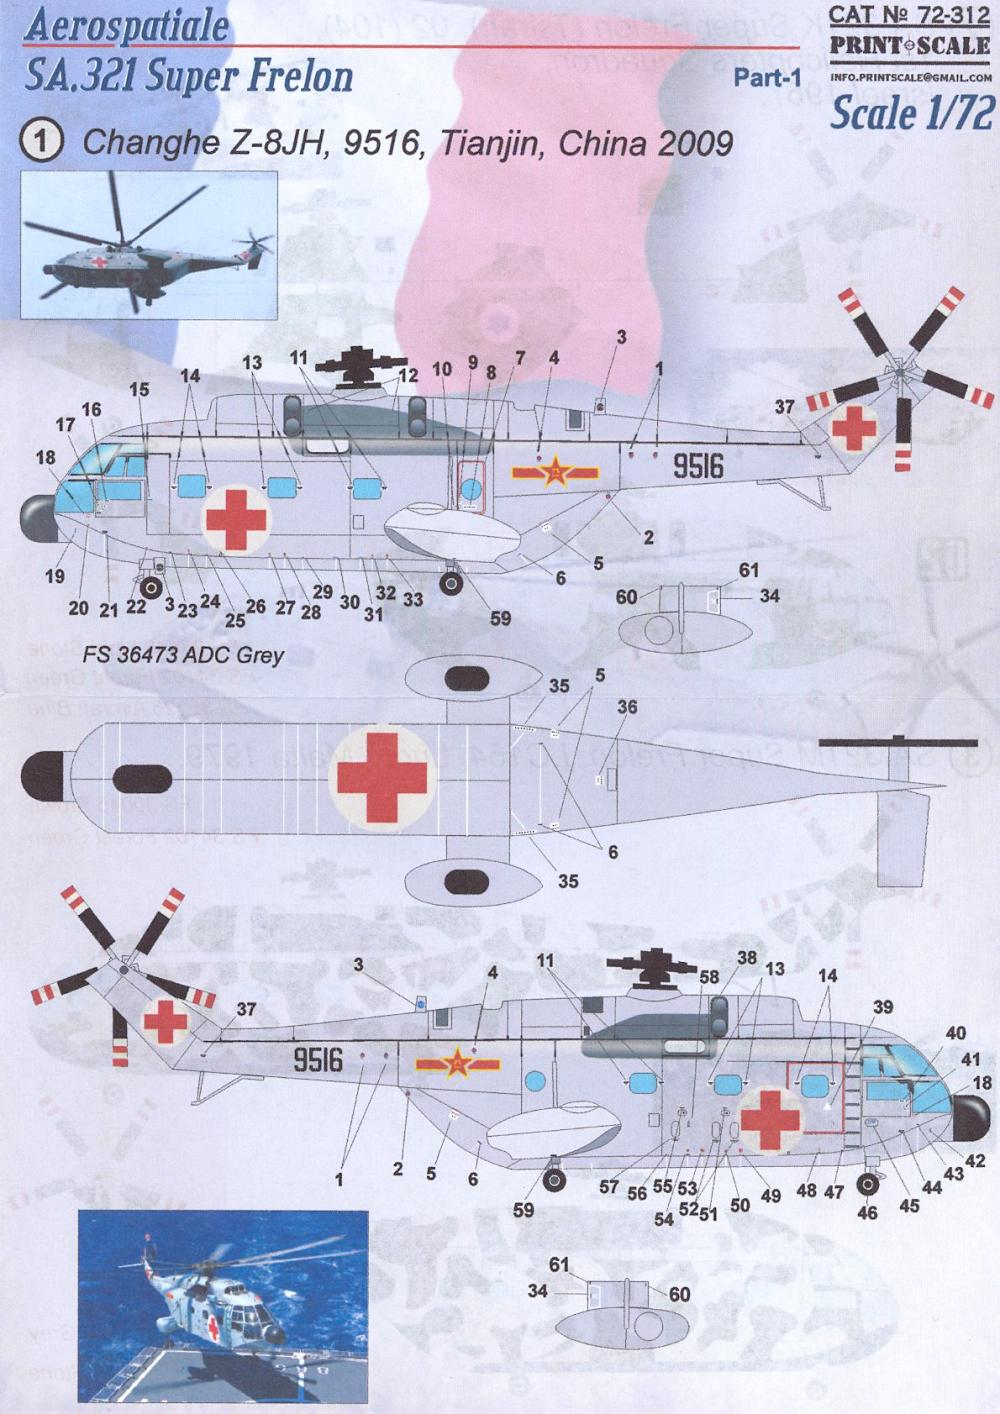 medium resolution of details about print scale decals 1 72 aerospatiale sa 321 super frelon helicopter part 1